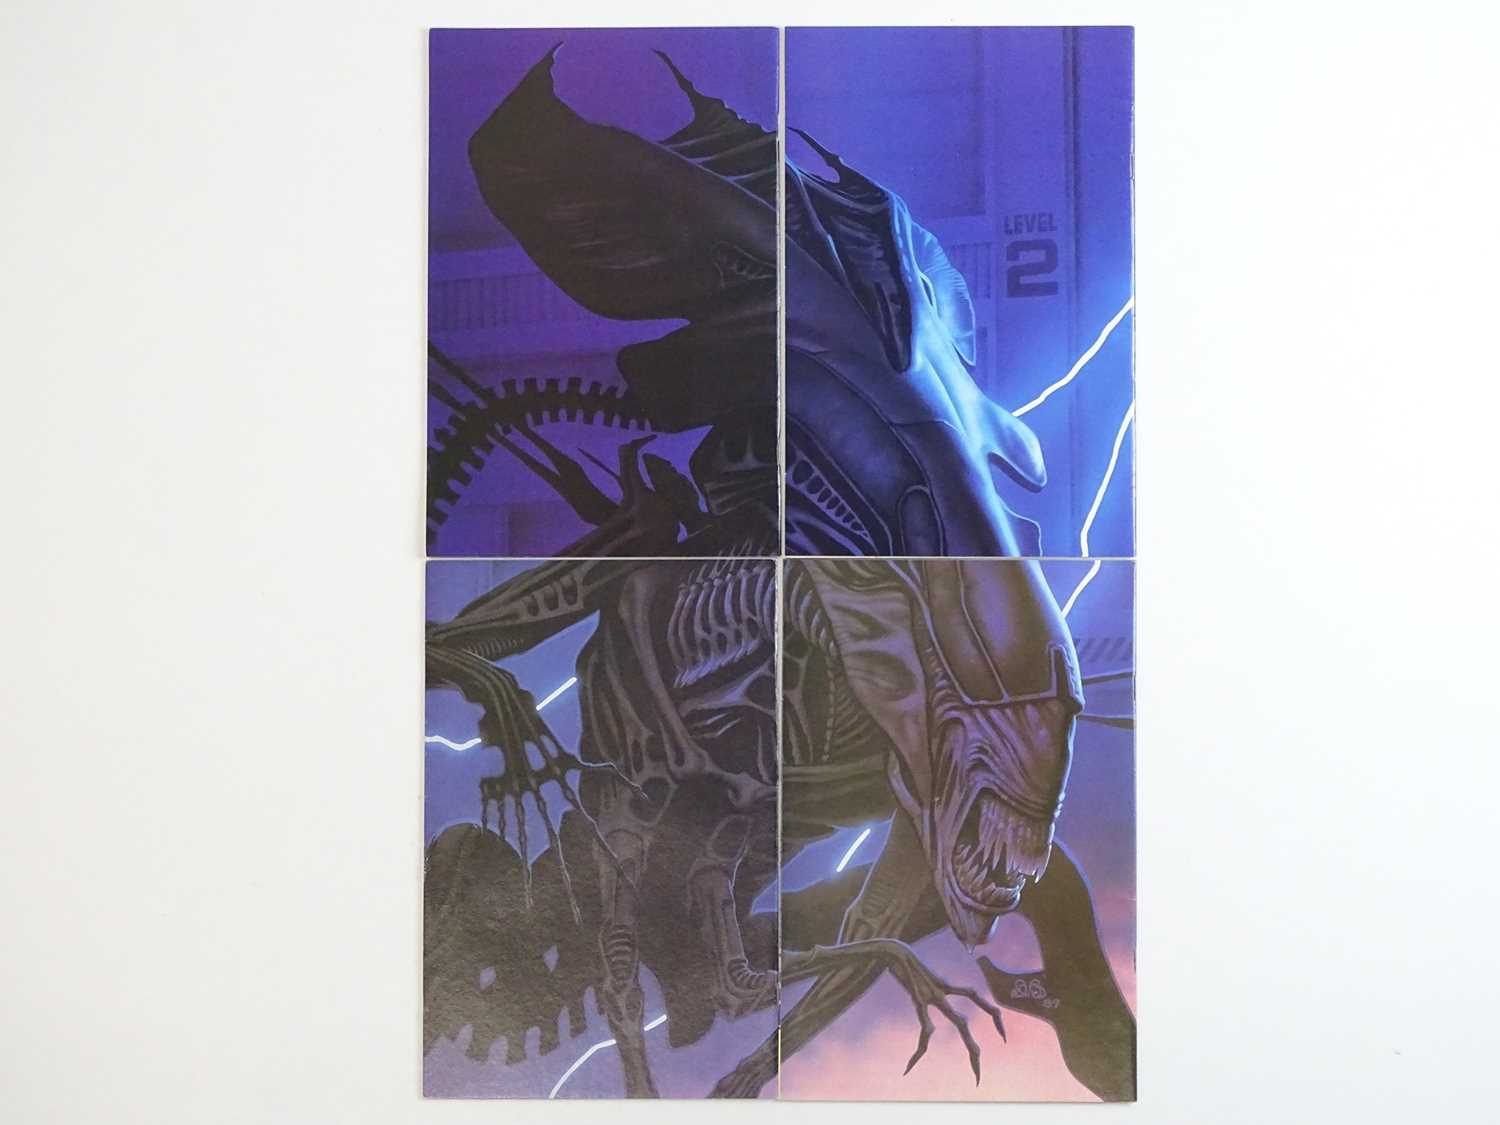 ALIENS #1, 2, 3, 4 - (4 in Lot) - (1989/90 - DARK HORSE) - ALL First Printings - Complete 4 x - Image 2 of 2